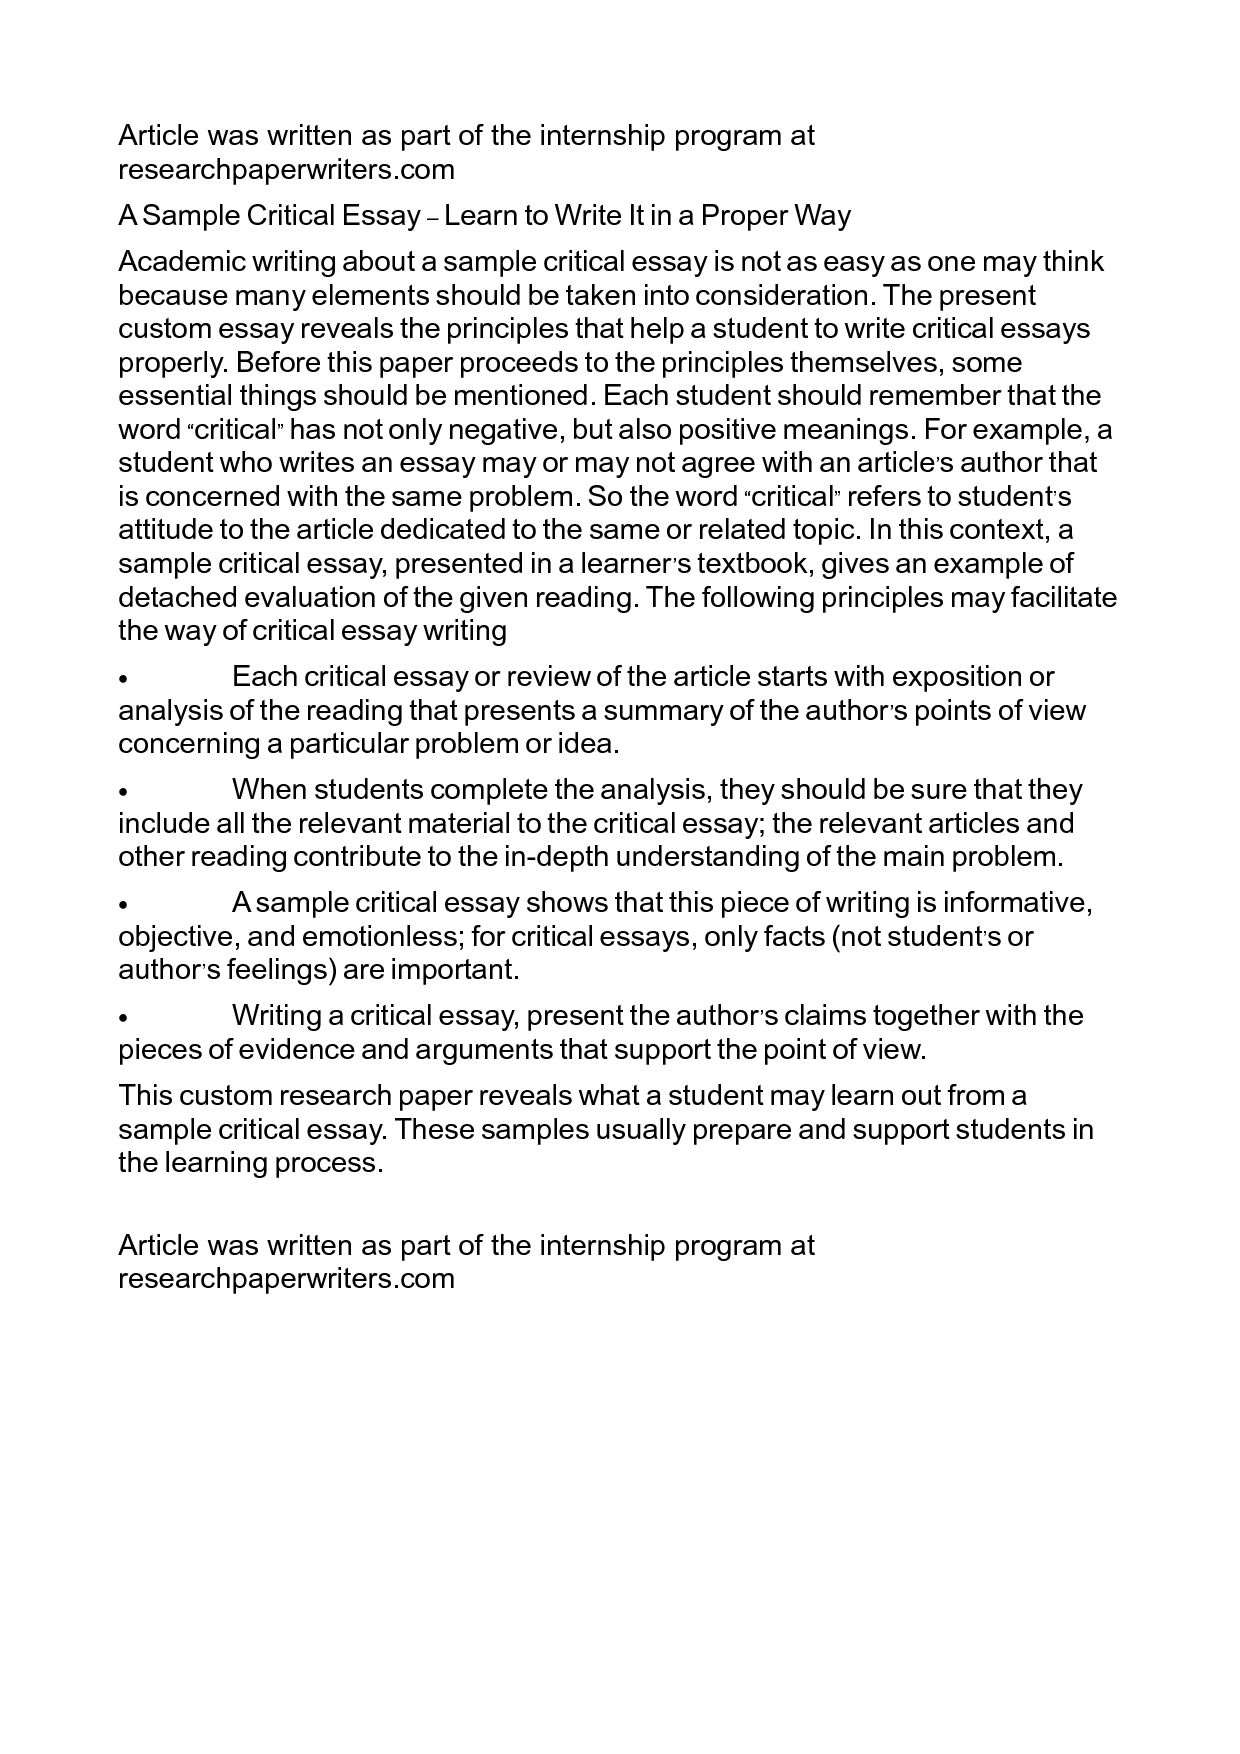 how to write an essay fast and easy how to write an essay fast and best way to write an essay fast essaybest way to write an argumentative essay professional writing